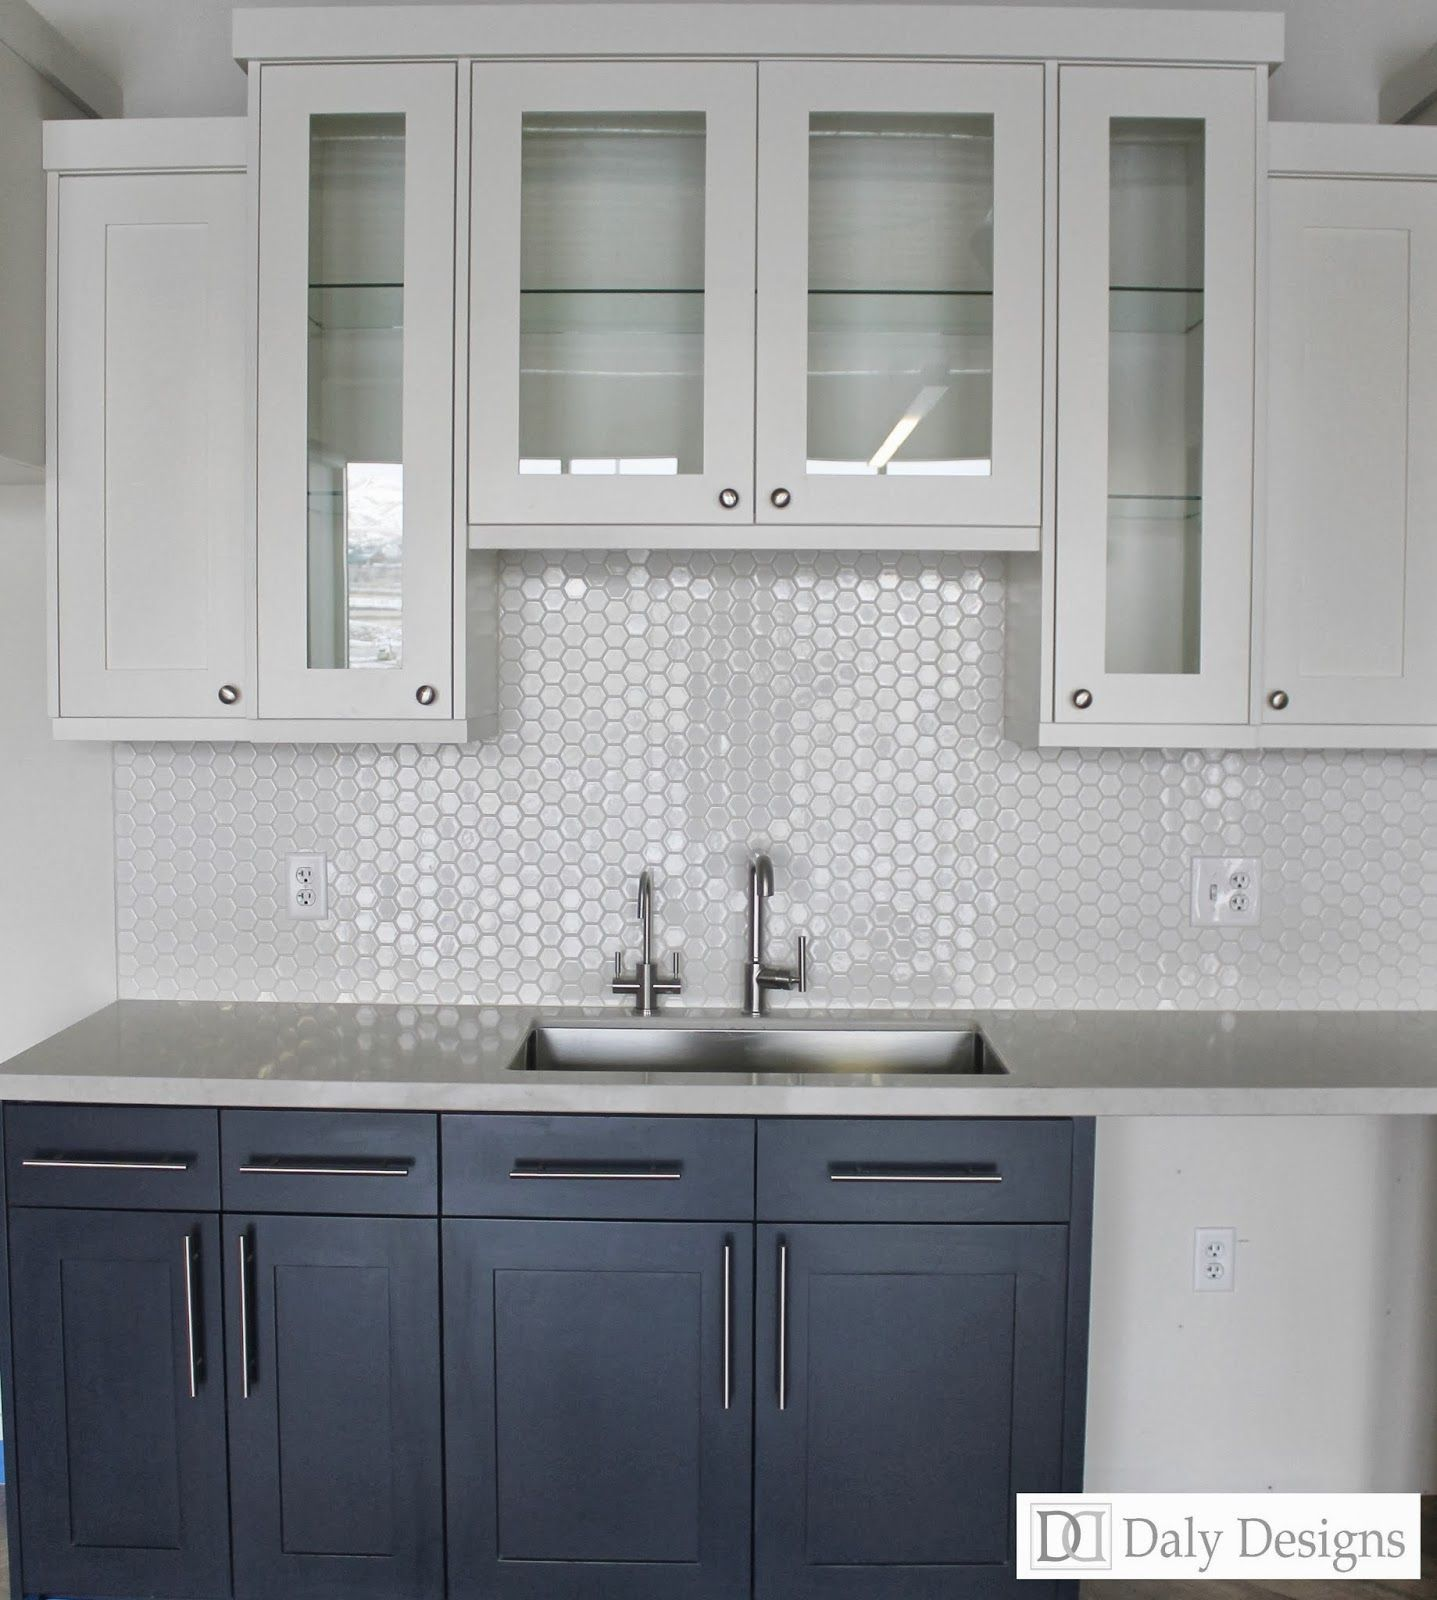 navy blue ink lowers white uppers client office break room kitchen daly designs kitchen on kitchen decor over sink id=56343